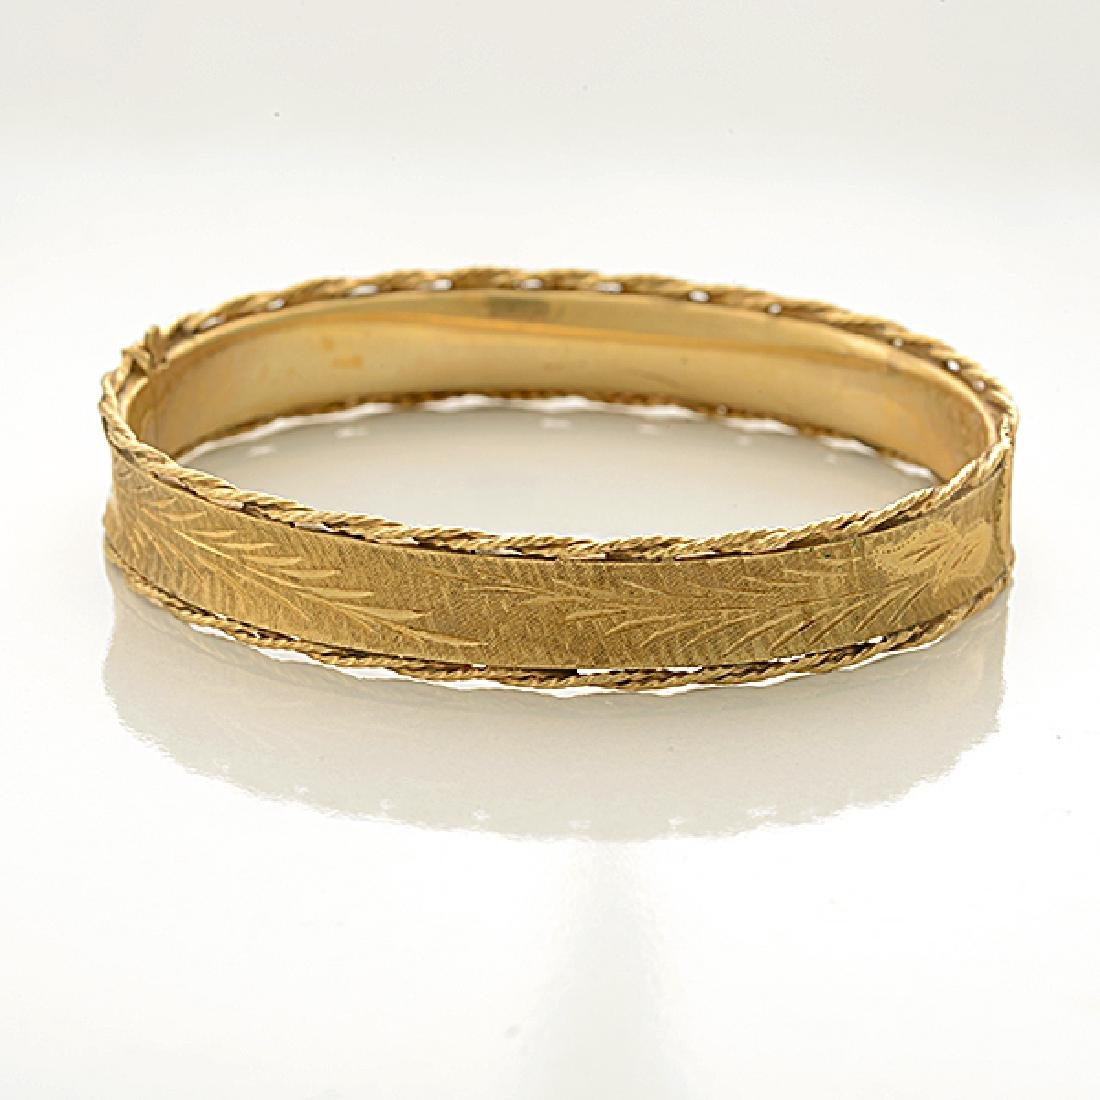 Collection of Two 14k Yellow Gold Bracelets. - 2